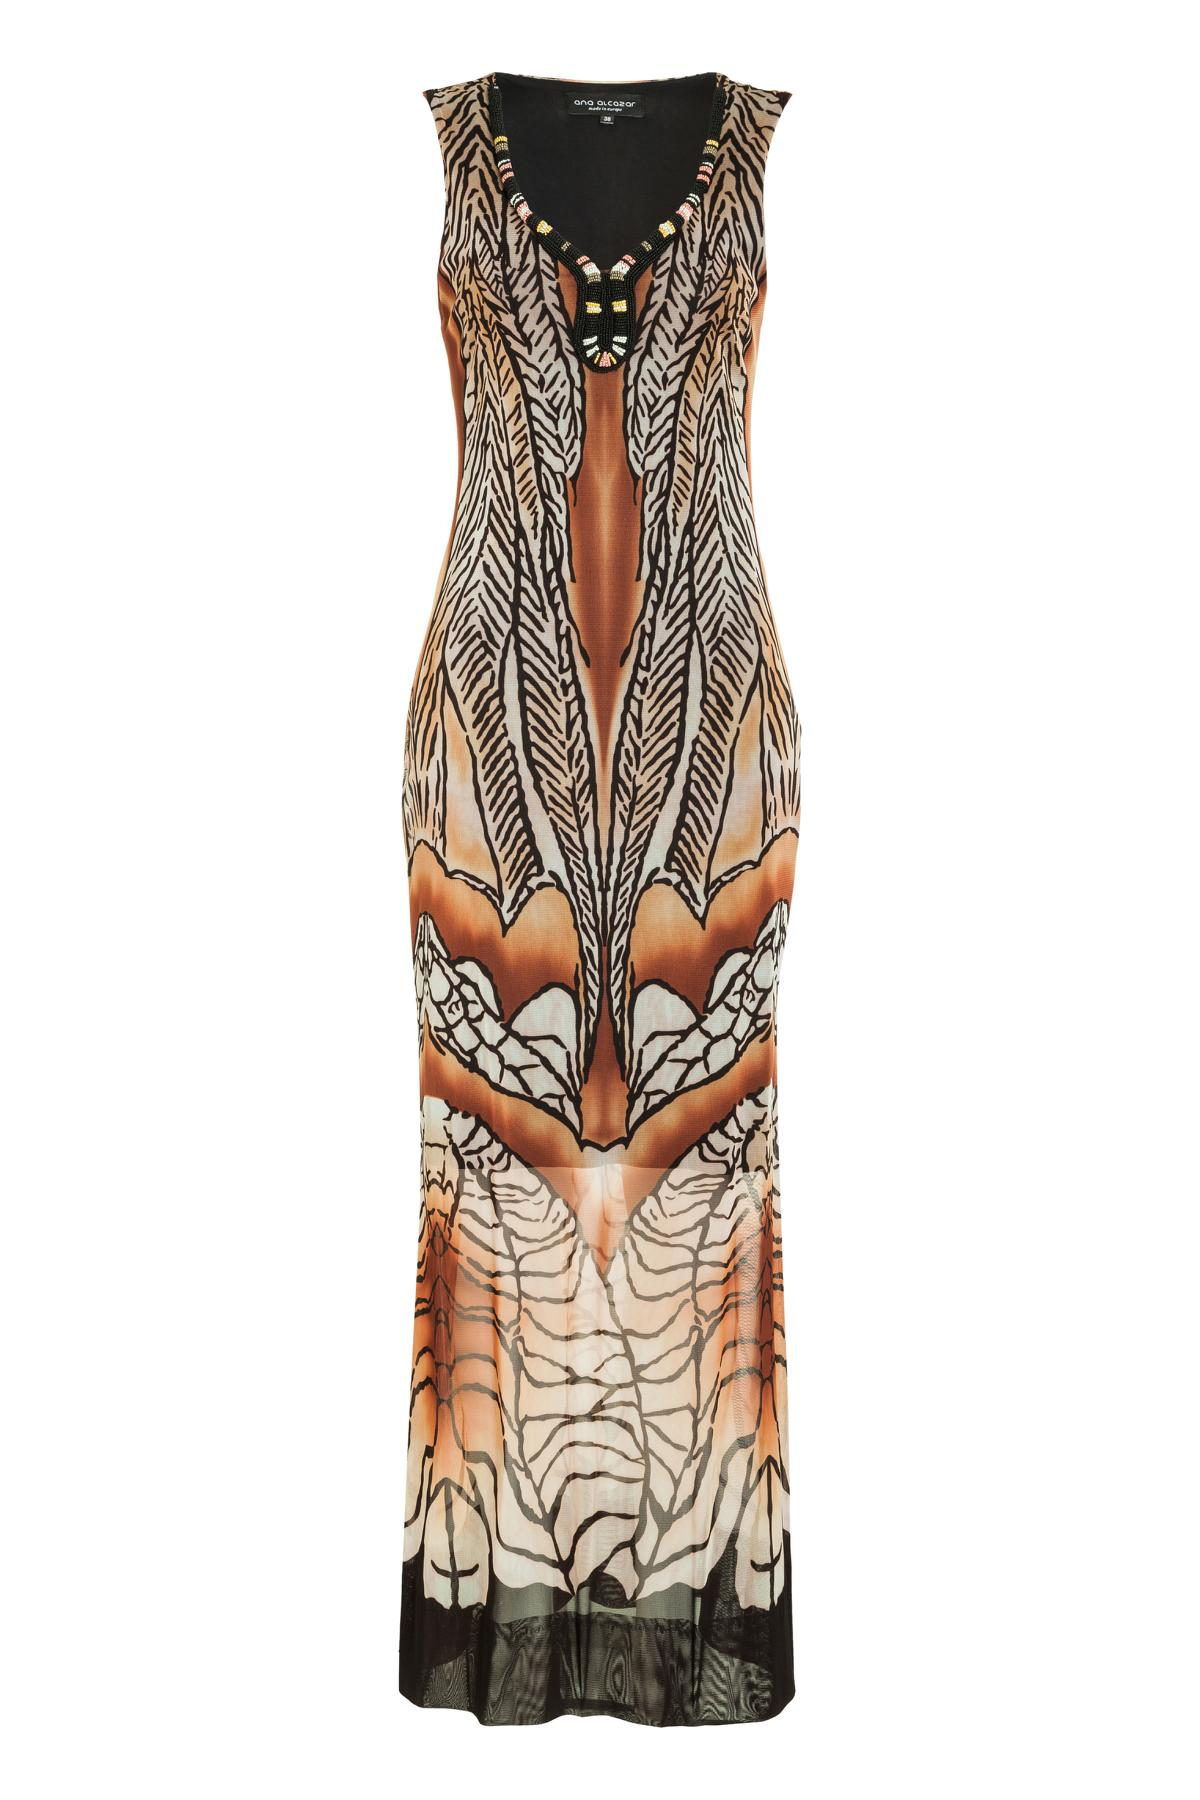 Ana Alcazar Limited Edition Maxi Dress Mercina